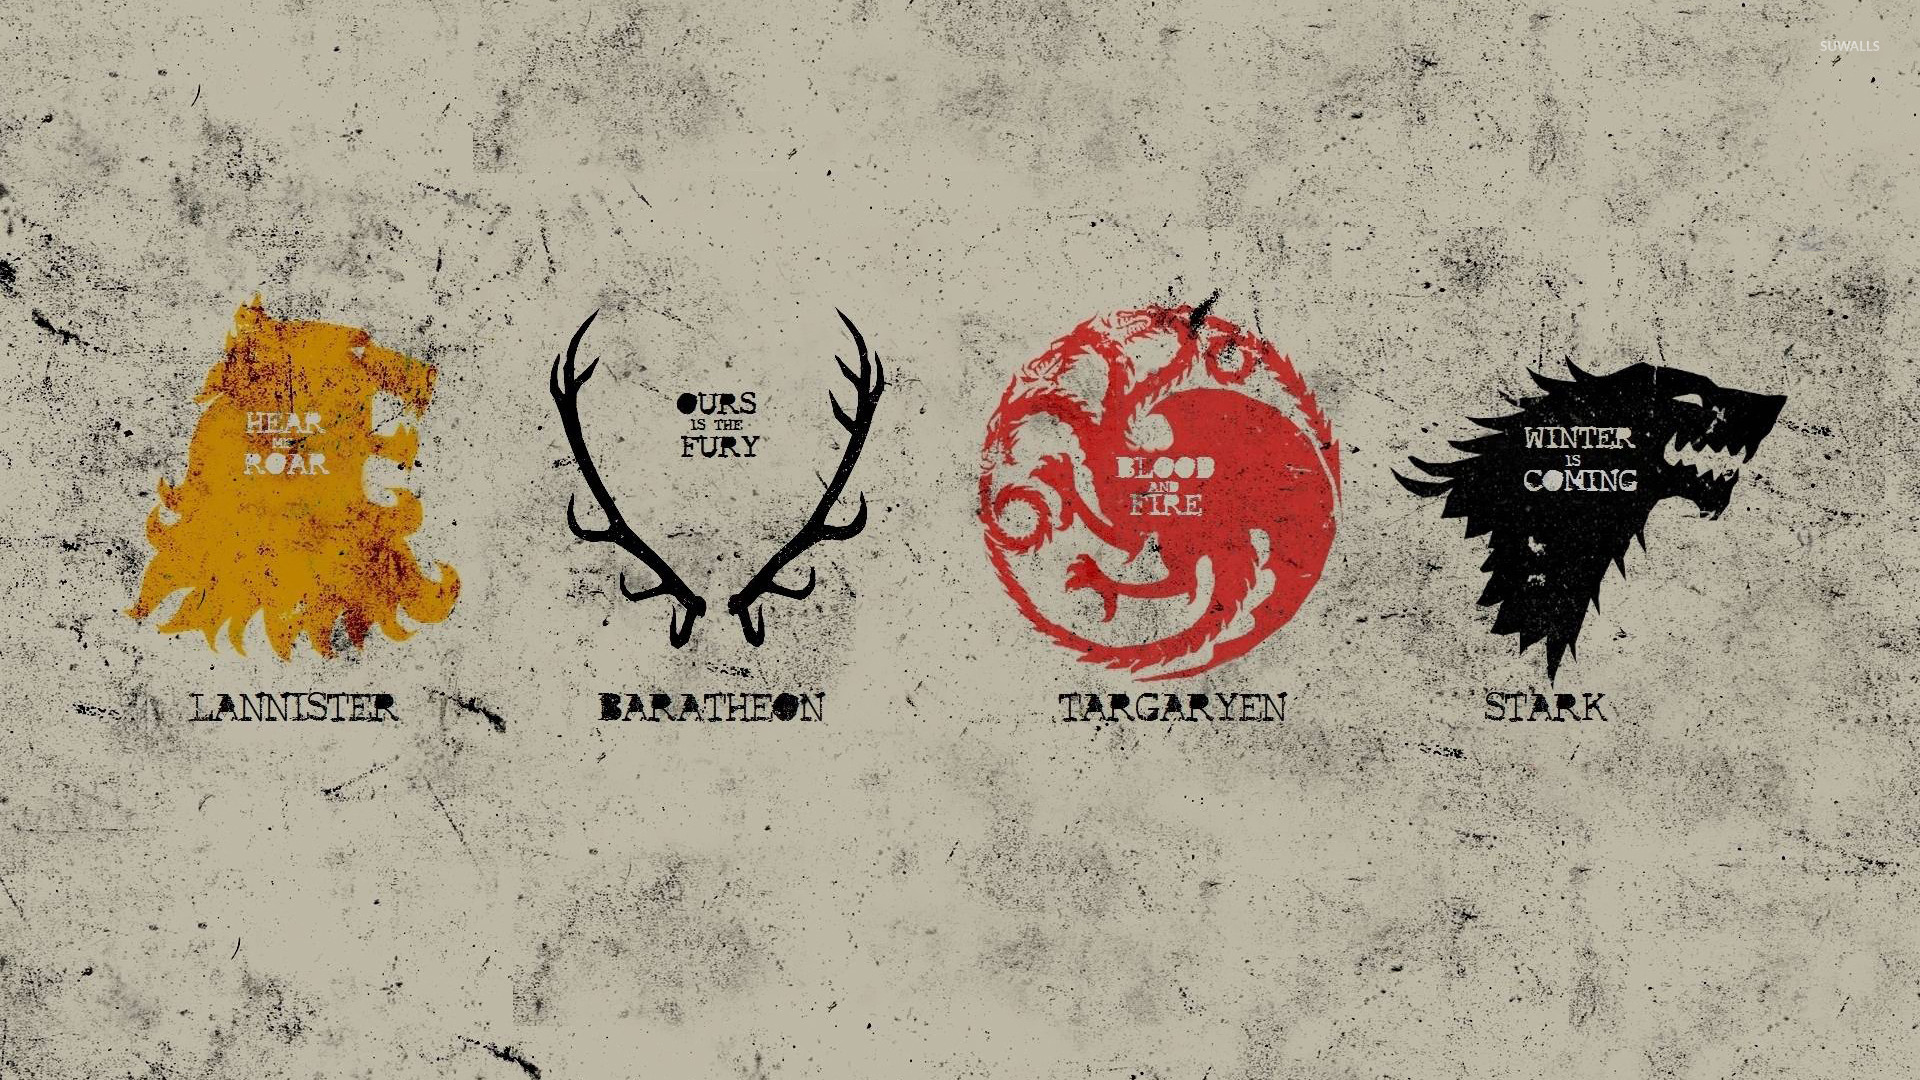 Game of Thrones wallpaper   TV Show wallpapers   15150 1366x768